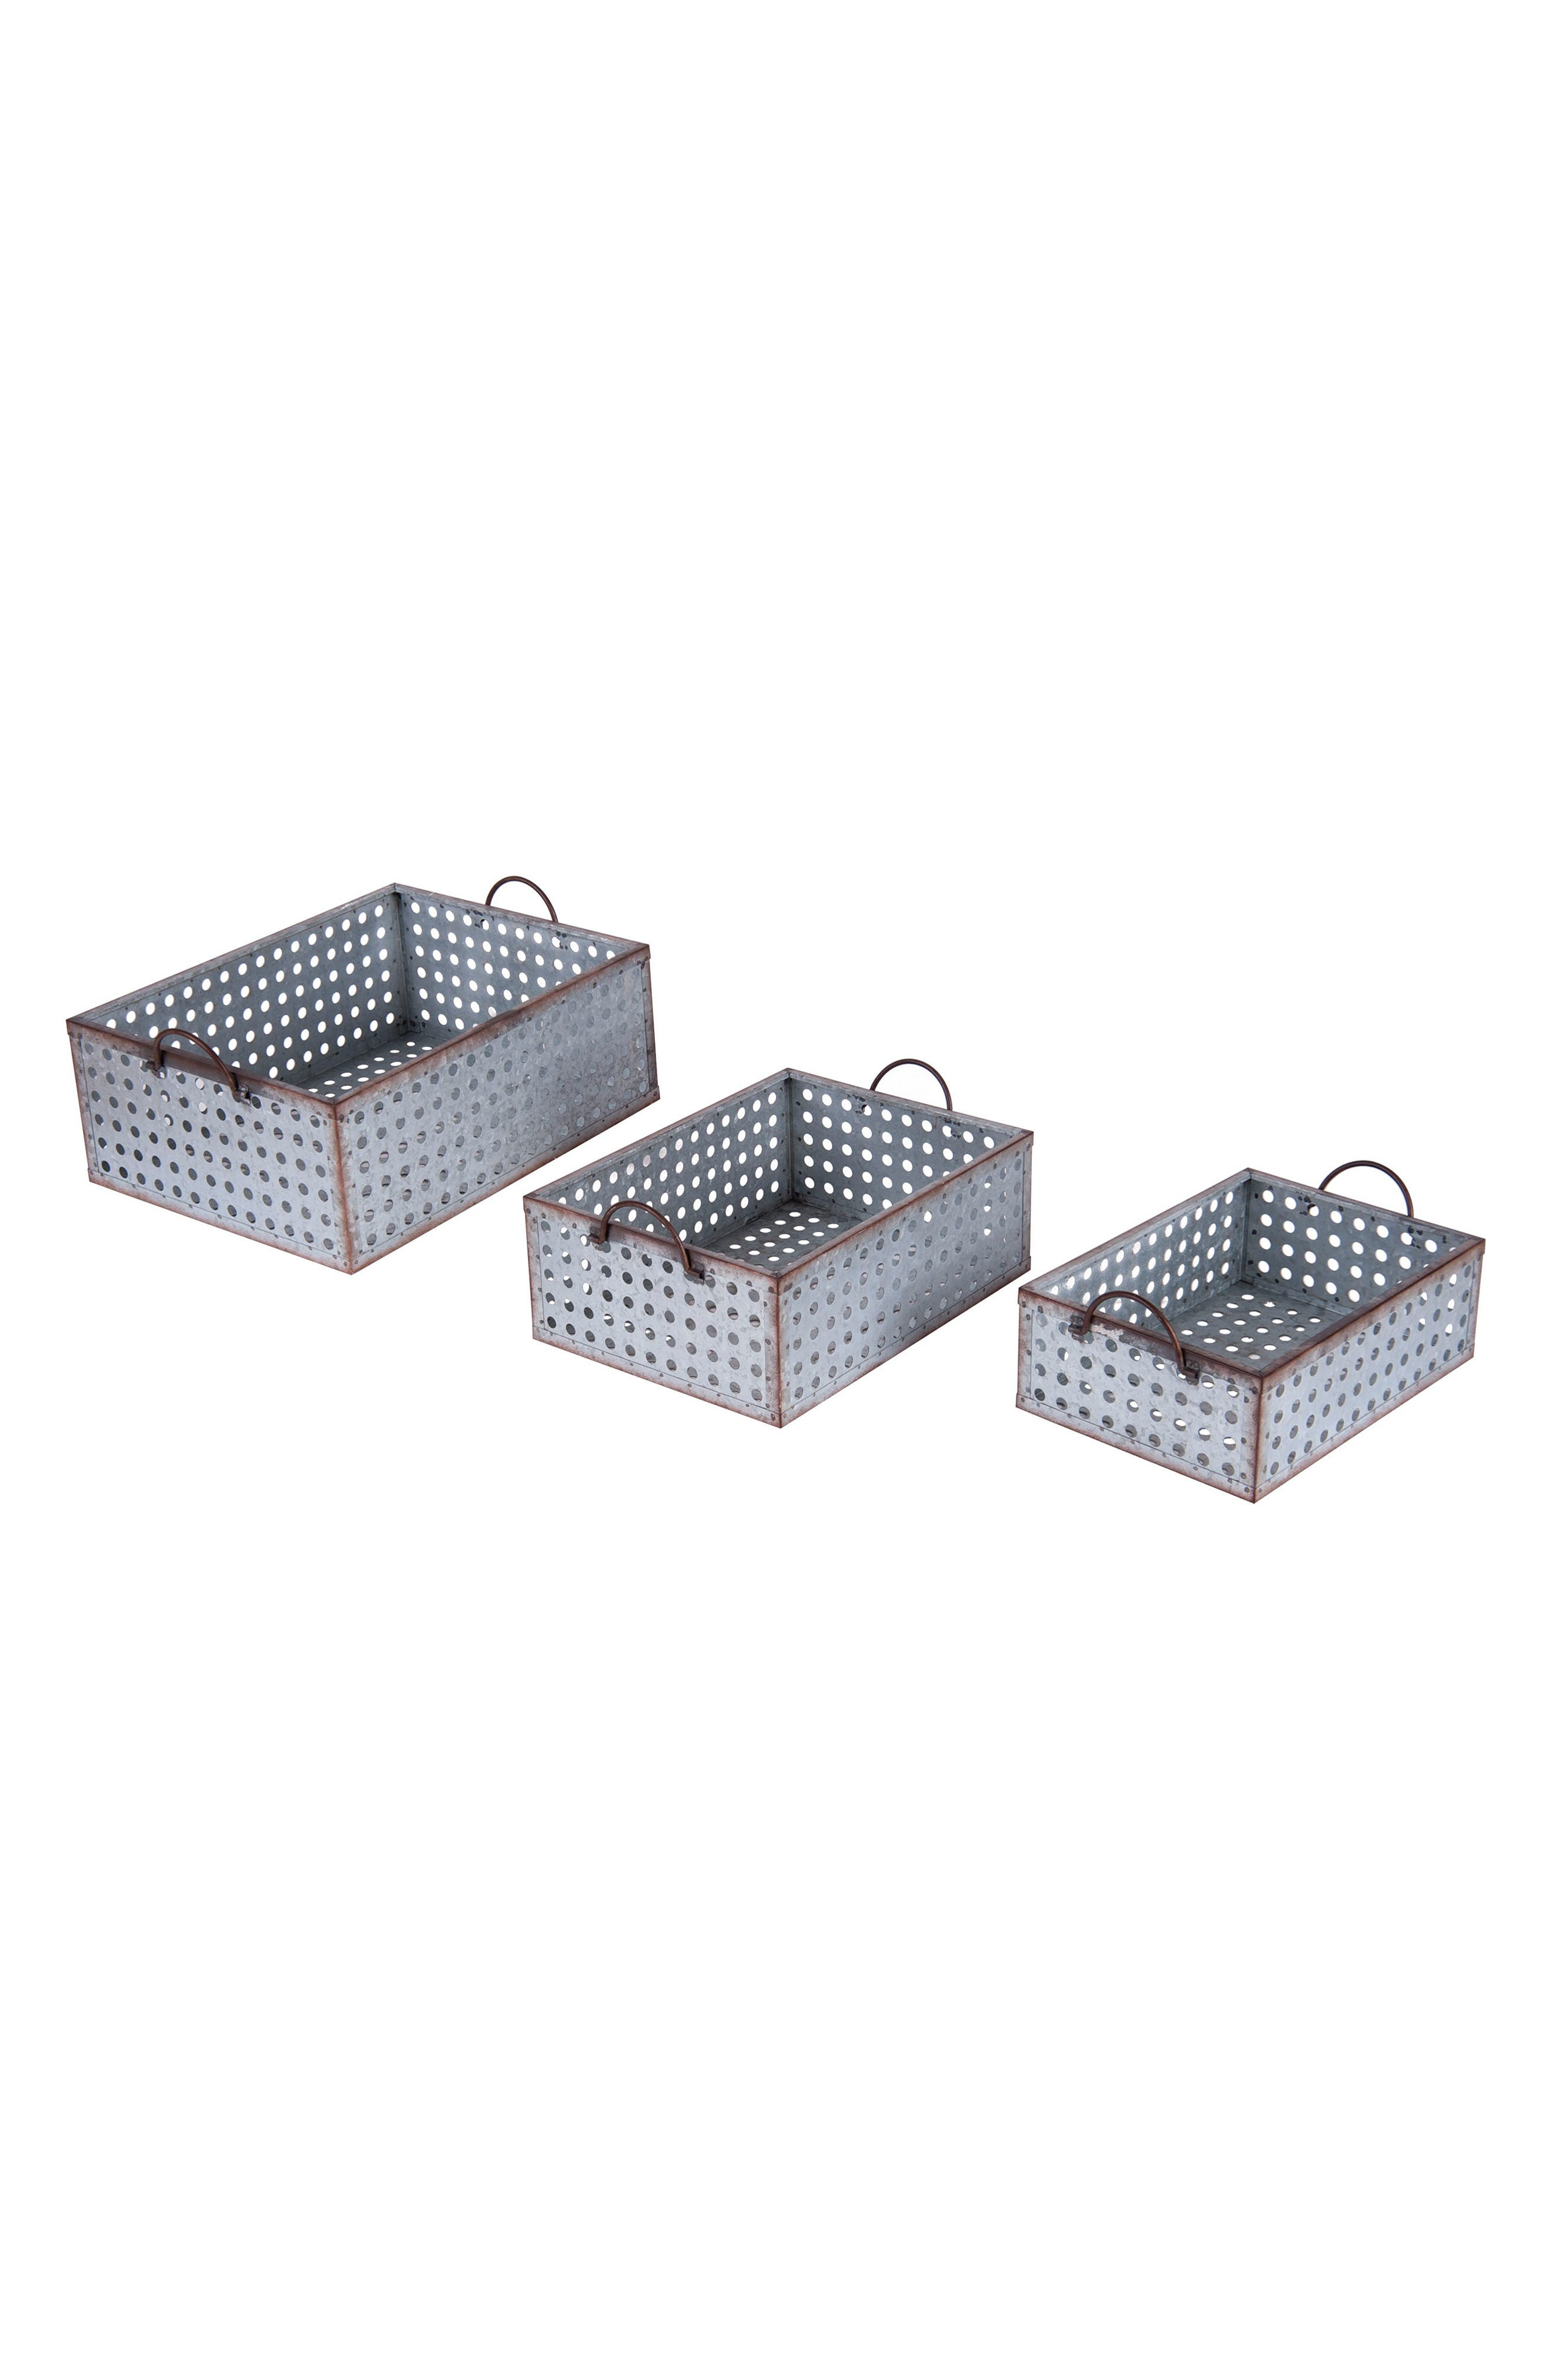 Set of 3 Perforated Baskets,                             Main thumbnail 1, color,                             METAL